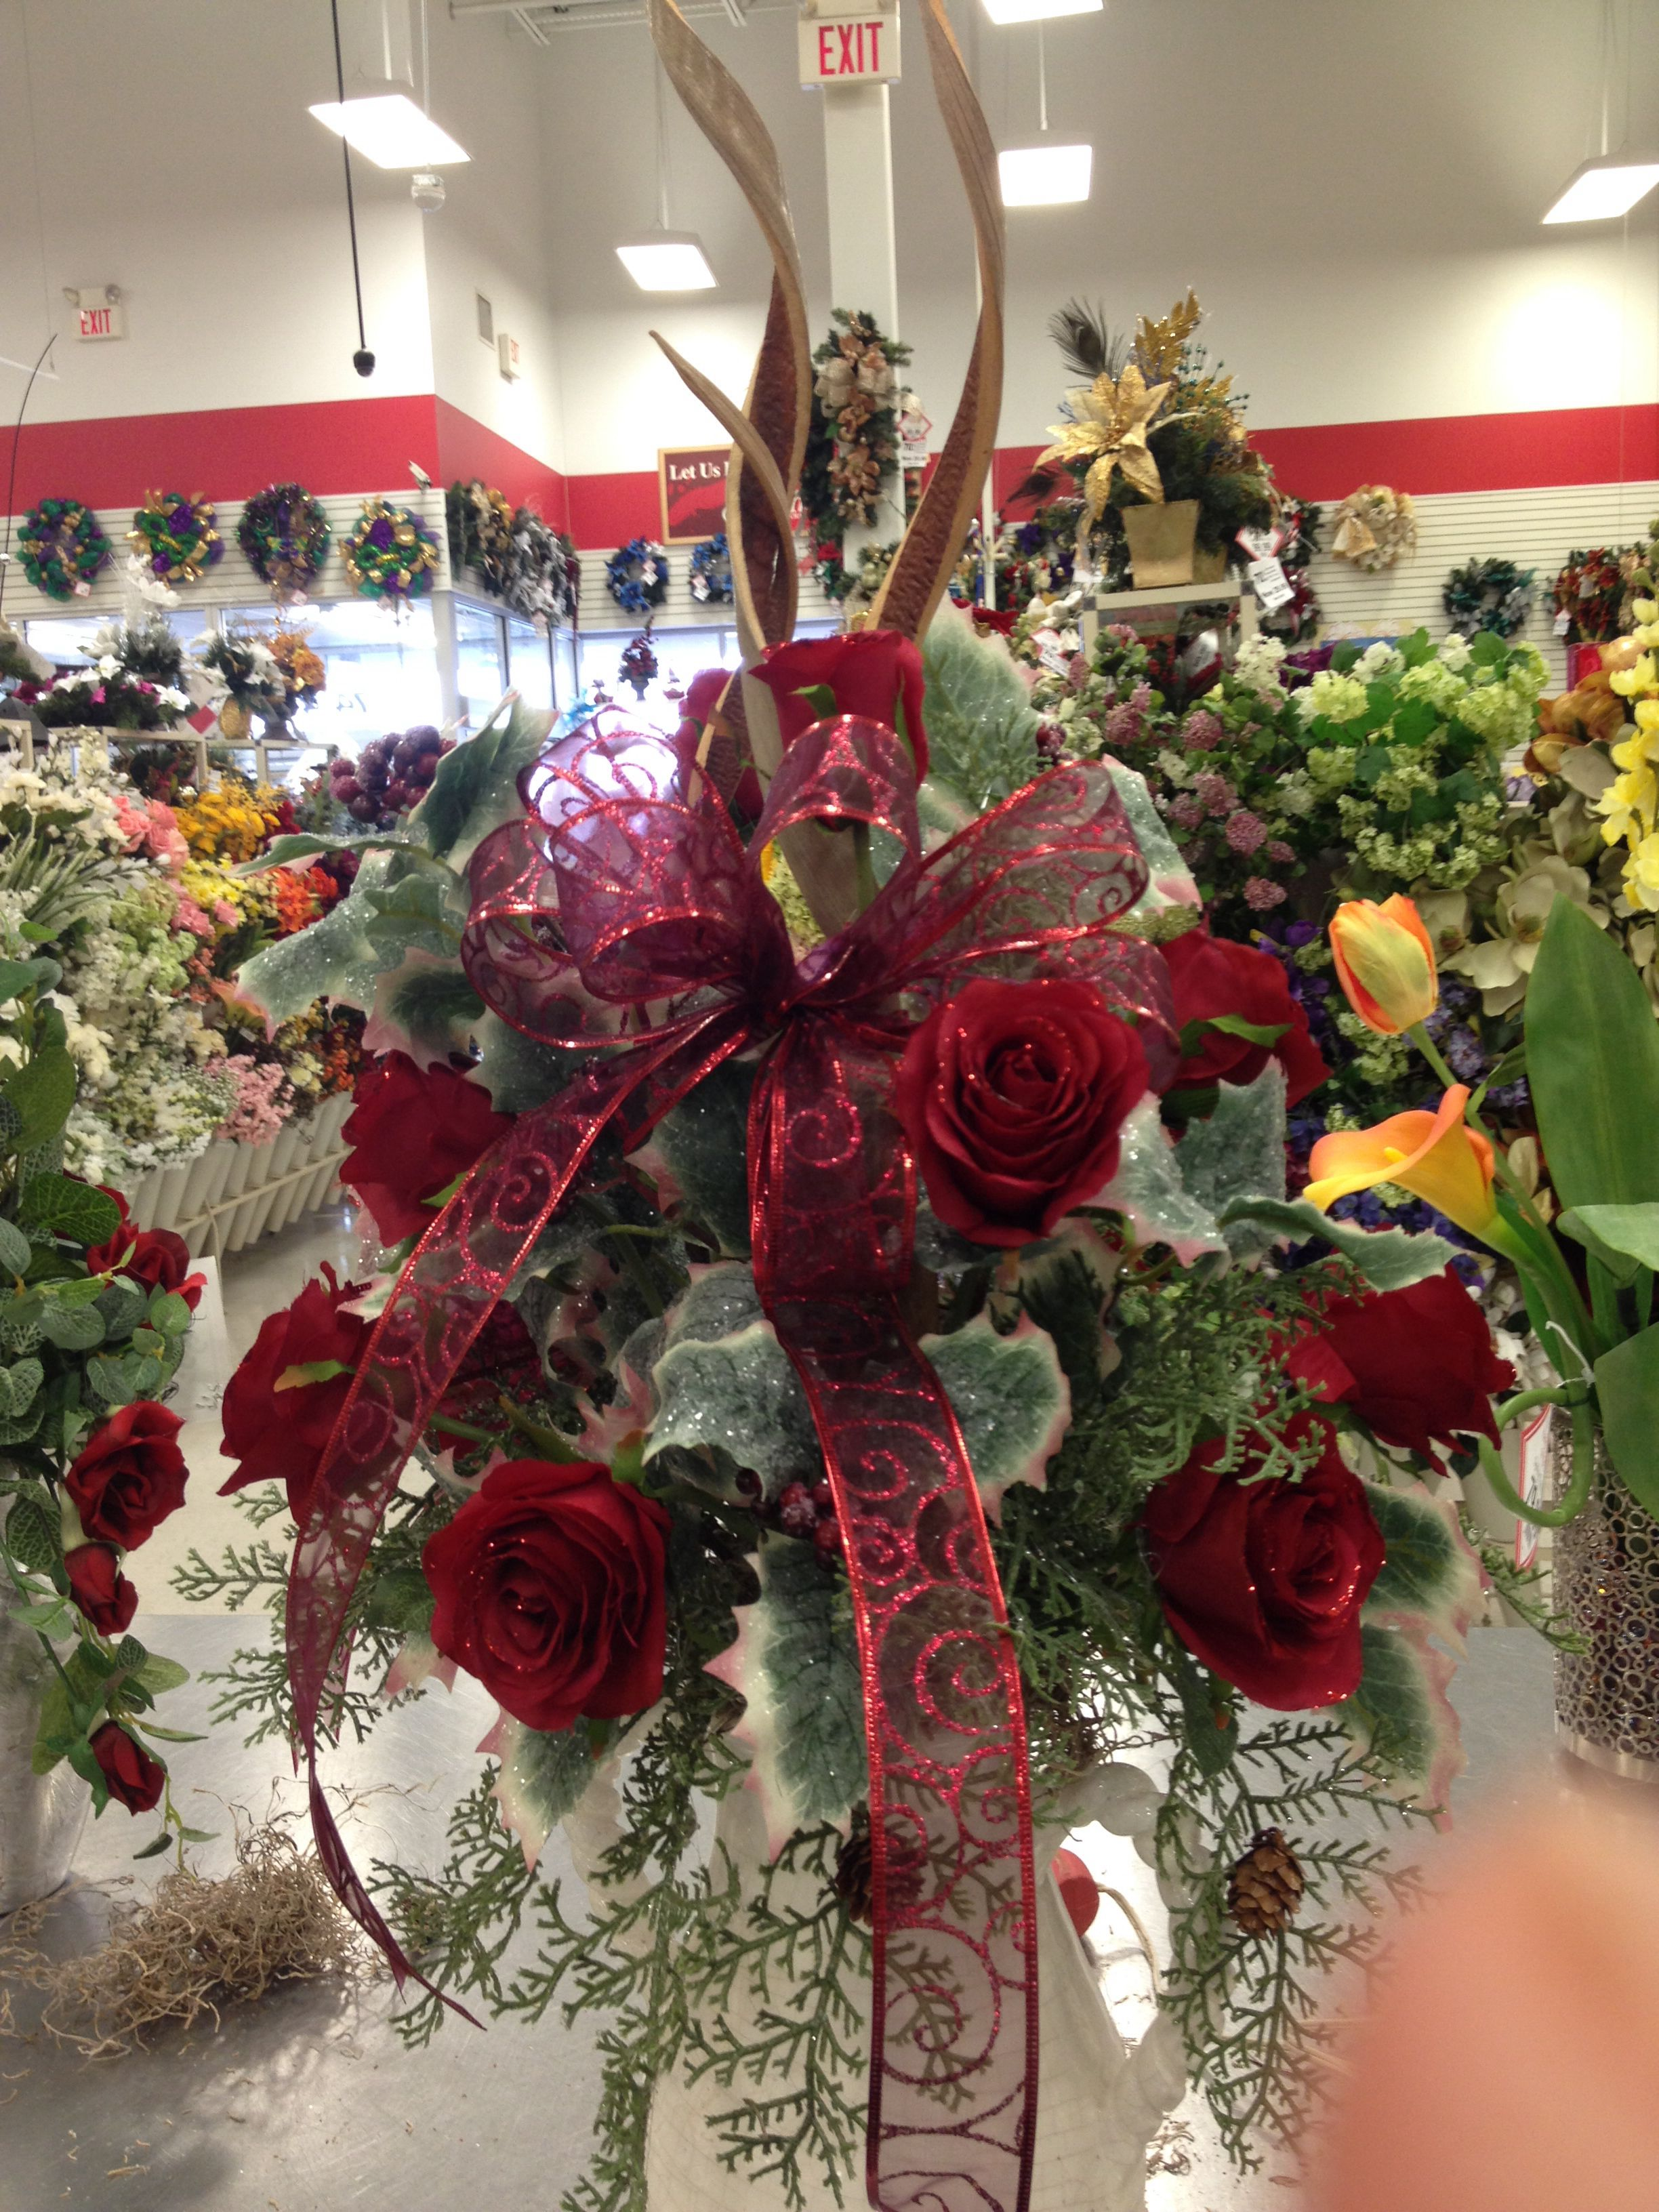 Custom Cemetery Cone Cemetery Flowers Flower Arrangements Christmas Decorations